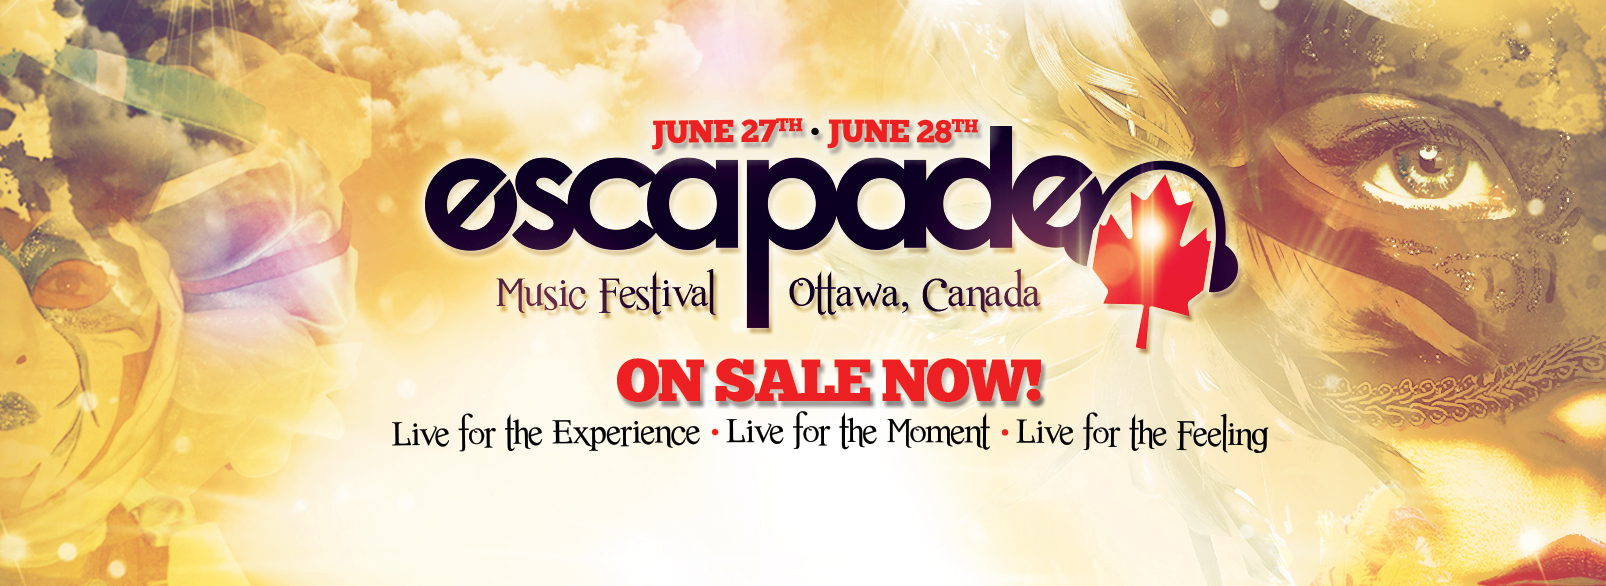 Escapade Music Festival 2015